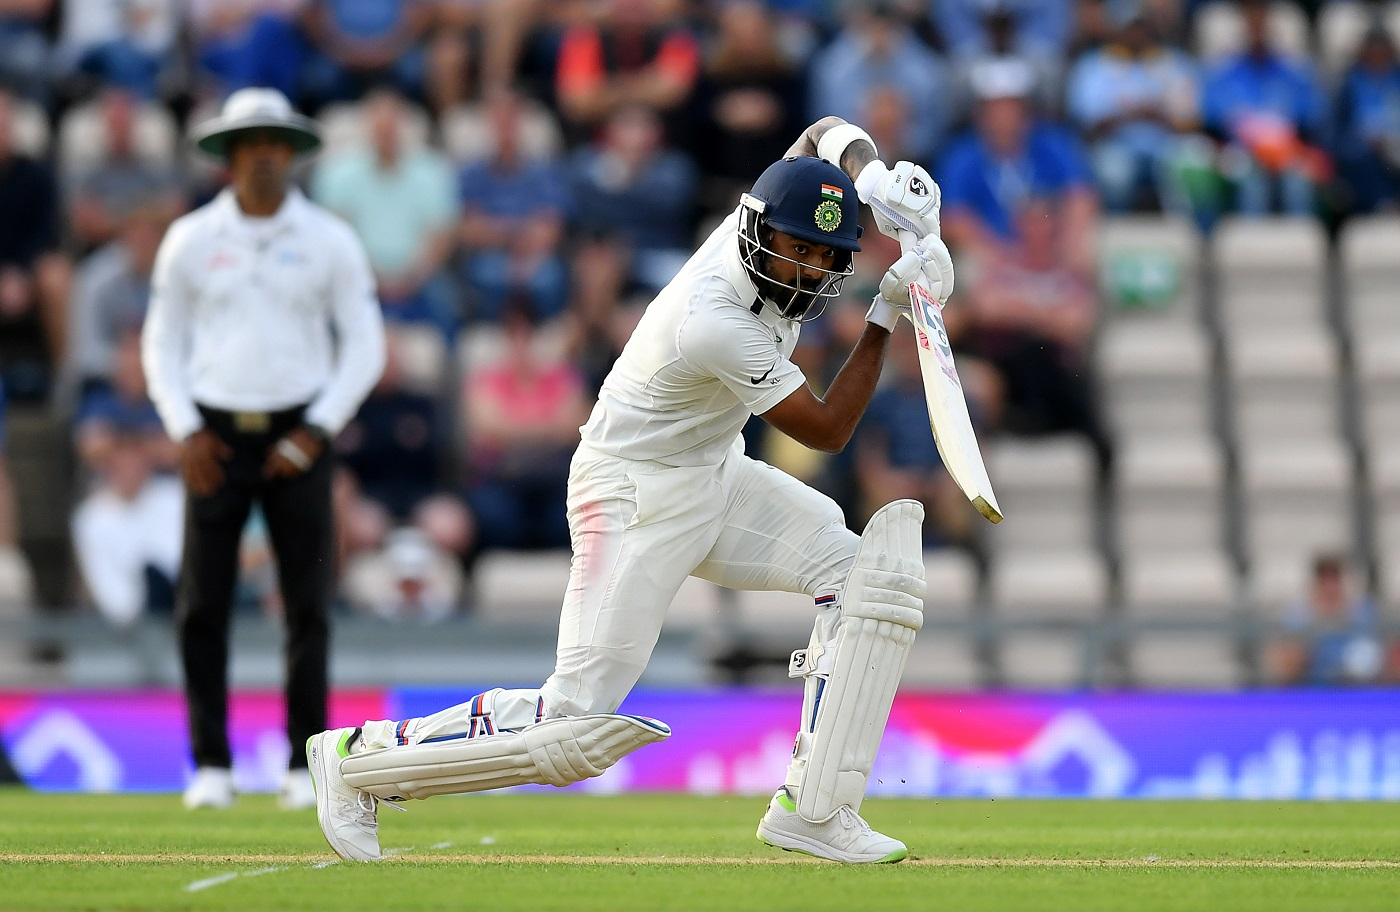 ENG vs IND 2018: Twitter Hails KL Rahul For Fighting Century At The Oval